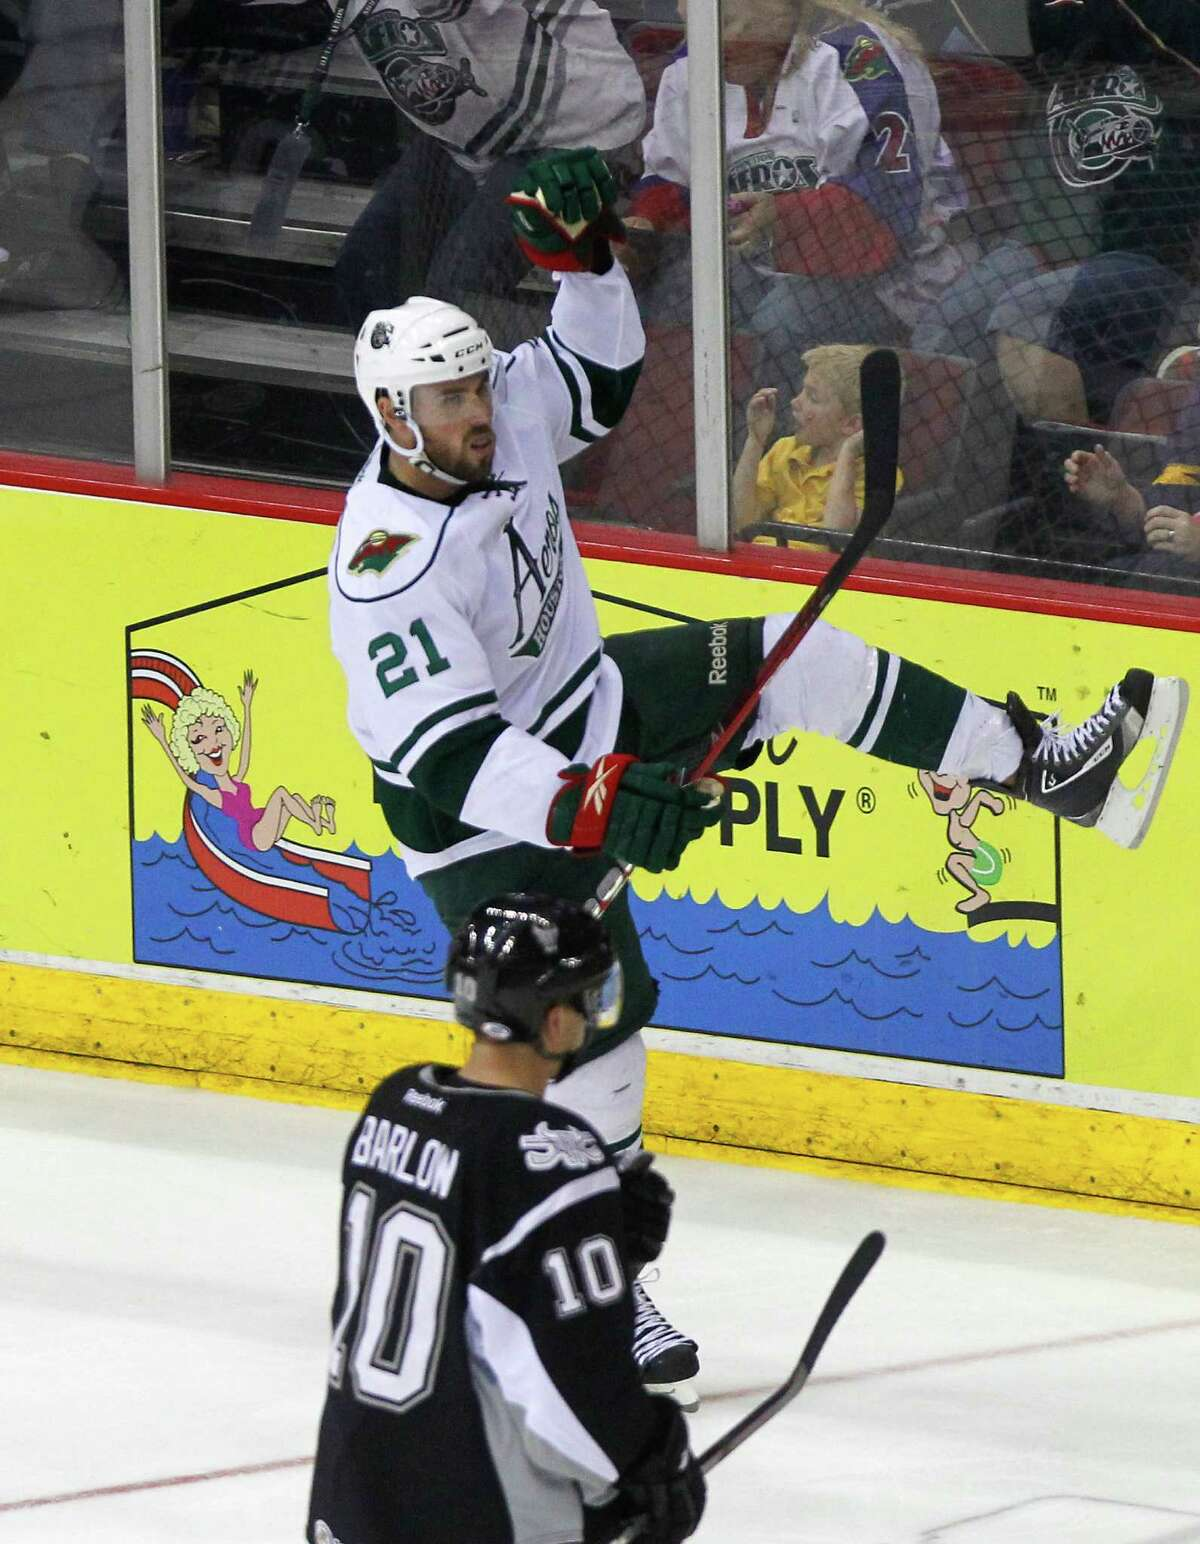 Right wing Dan DaSilva scored the goal that put the Aeros ahead for good during the second period.